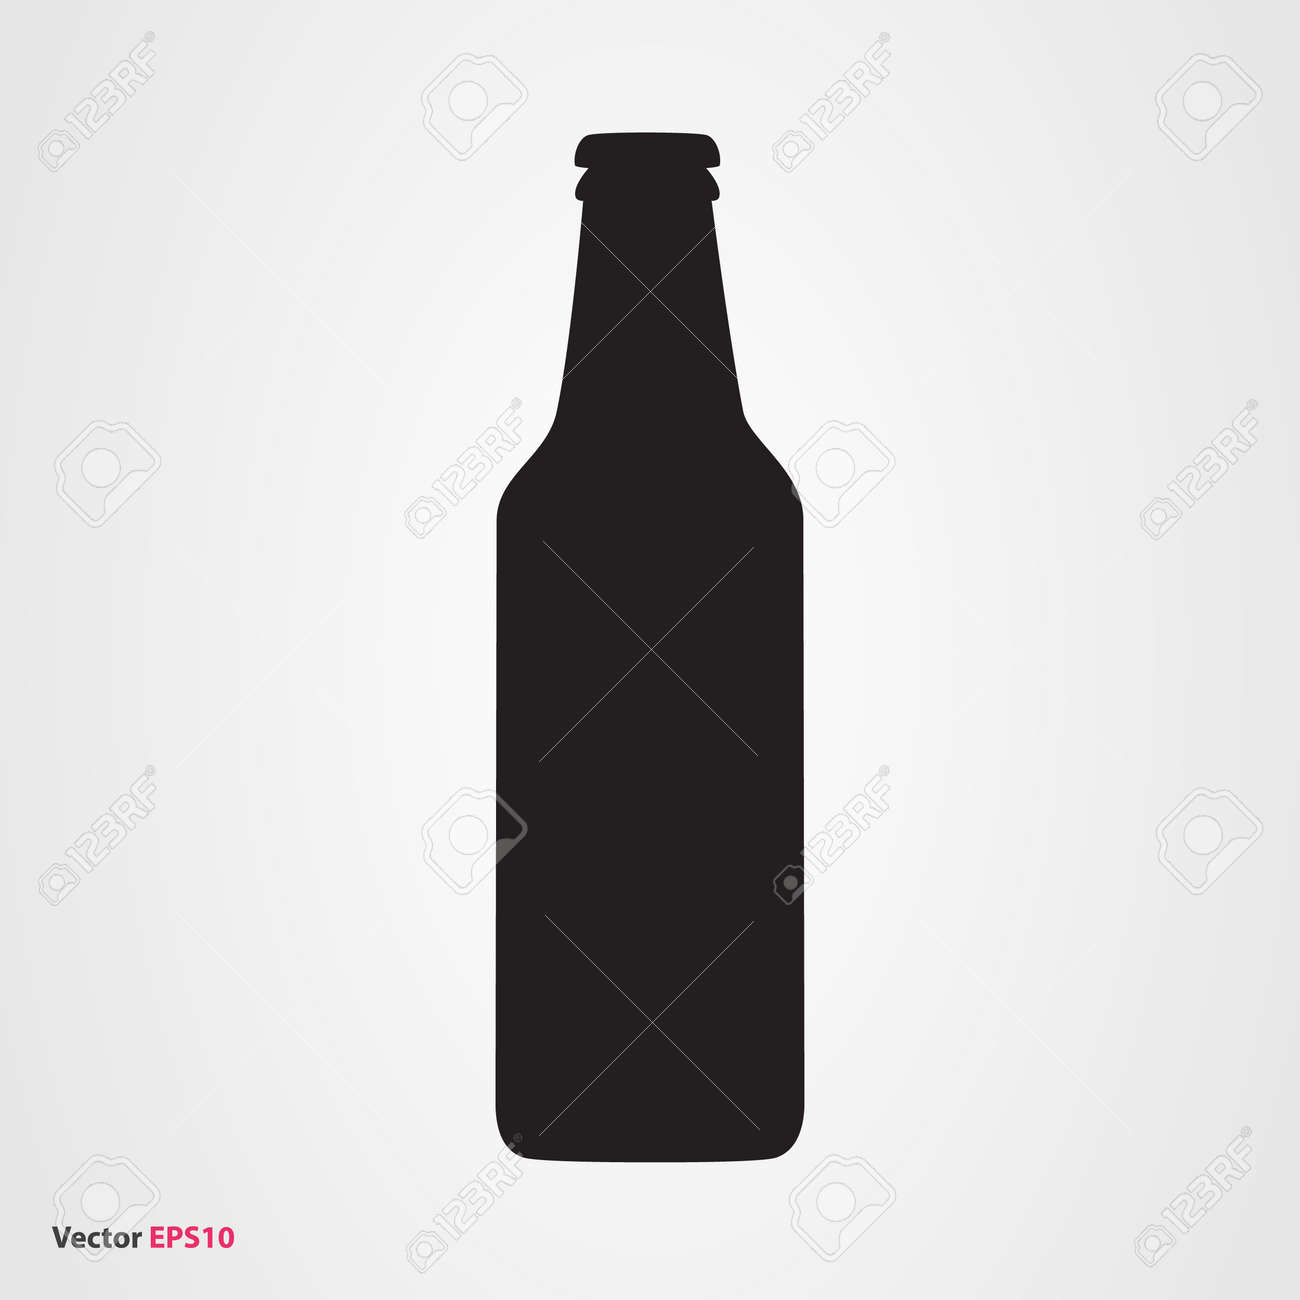 beer bottle vector icon royalty free cliparts vectors and stock rh 123rf com free vector beer bottles vector art beer bottle